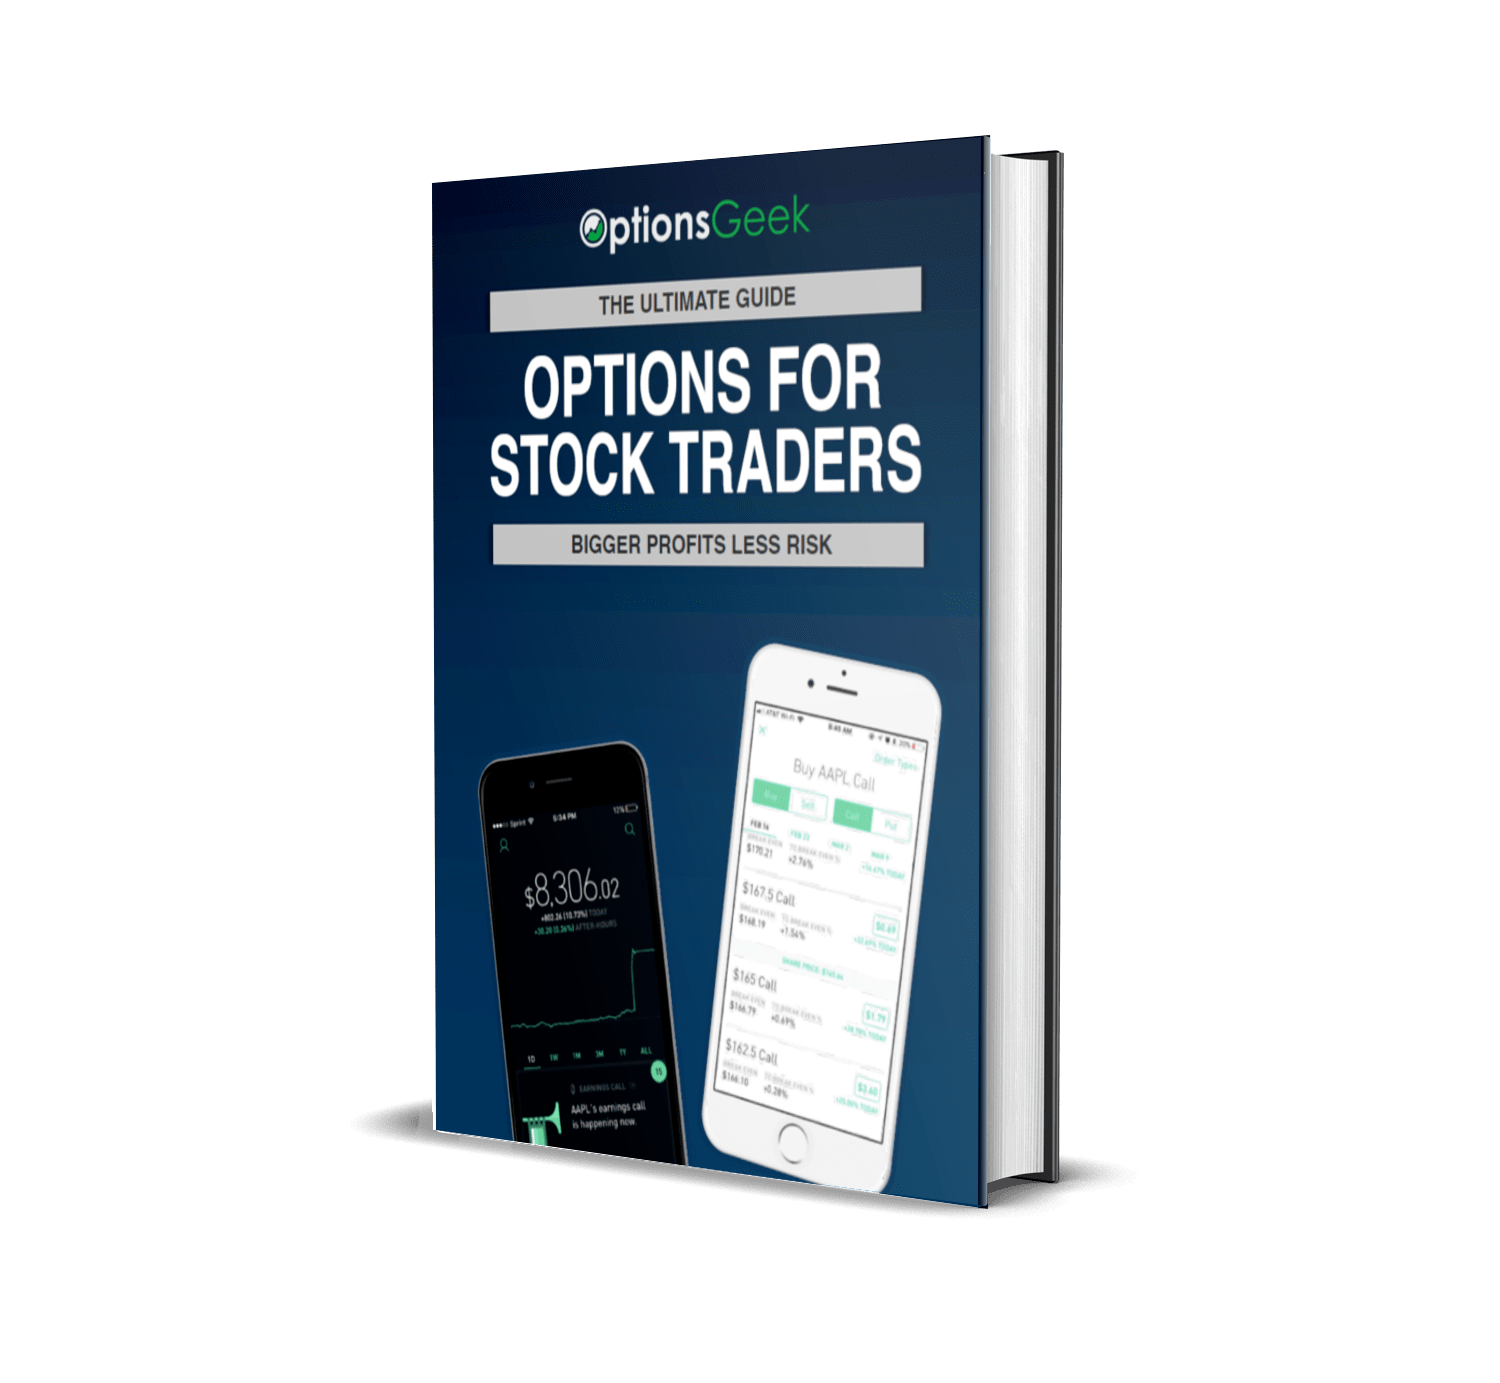 Options for Stock Traders eBook cover